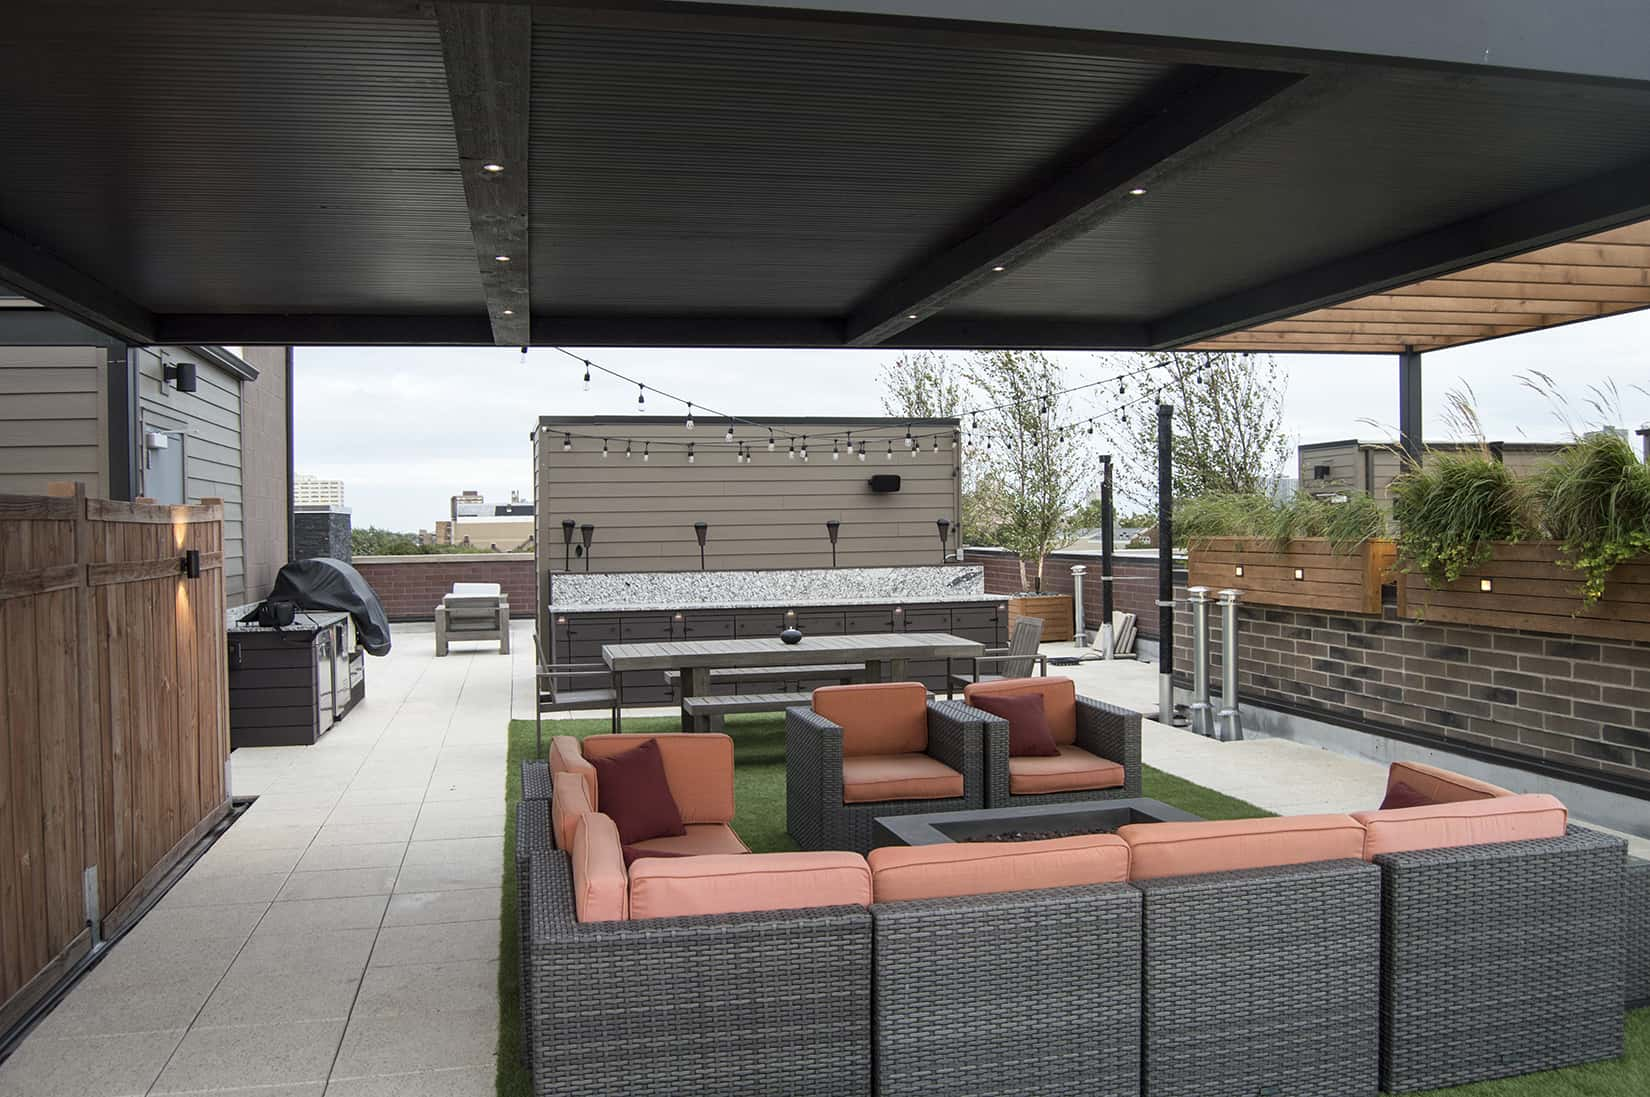 Covered Rooftop Deck Lounge Area Fire Pit Dining Area Buffet Outdoor Kitchen Planters Uptown Chicago